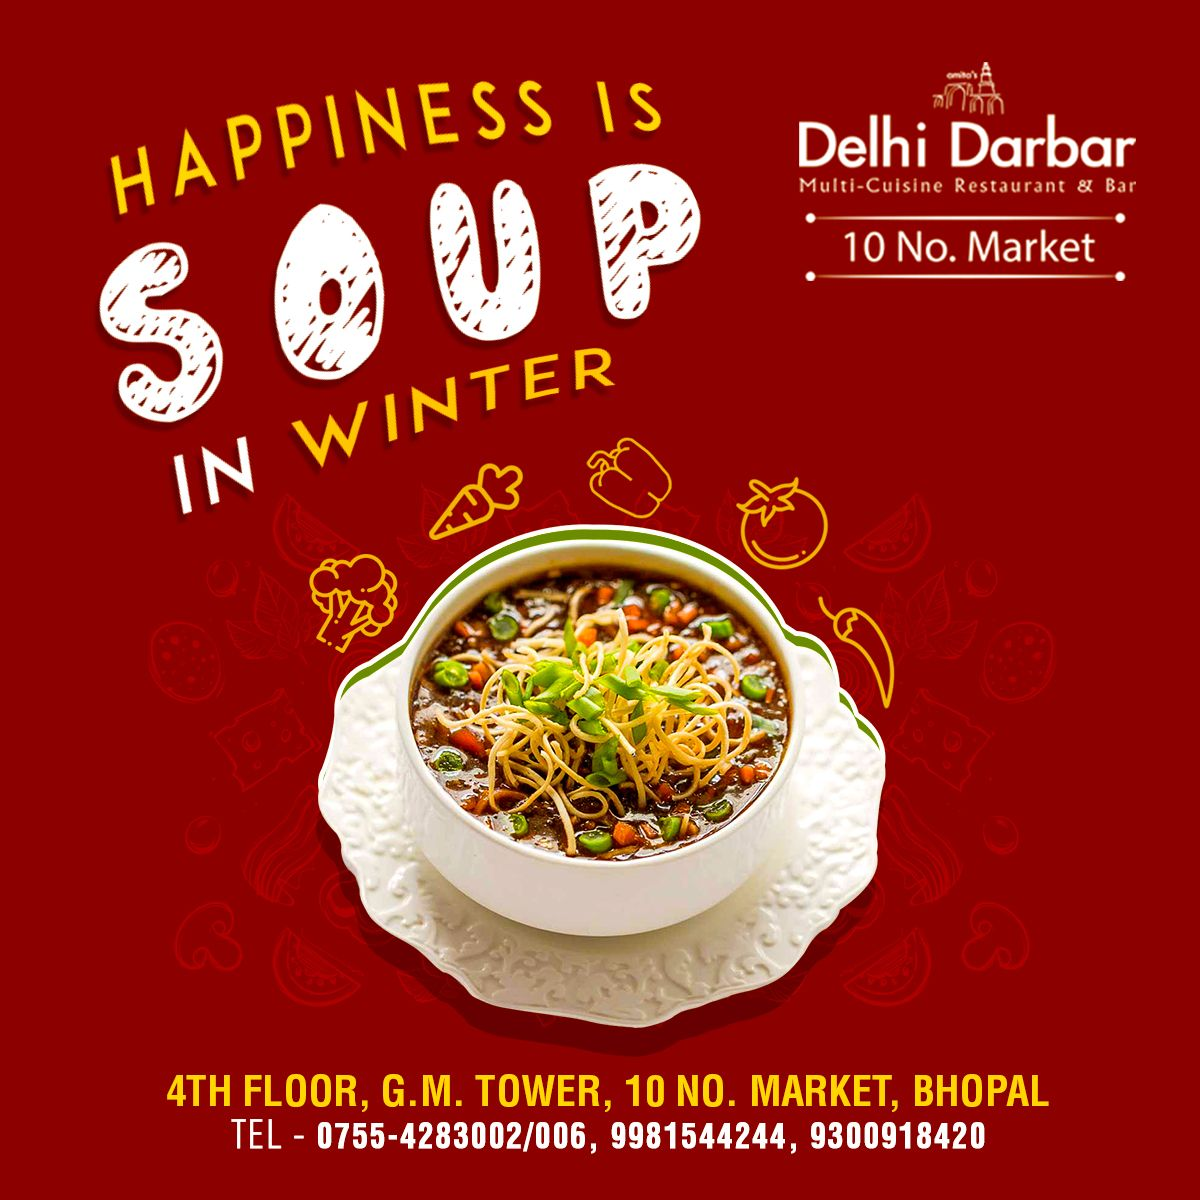 Soup a perfect start for wonderful dining. Treat yourself to rich divine flavor. Head straight to A